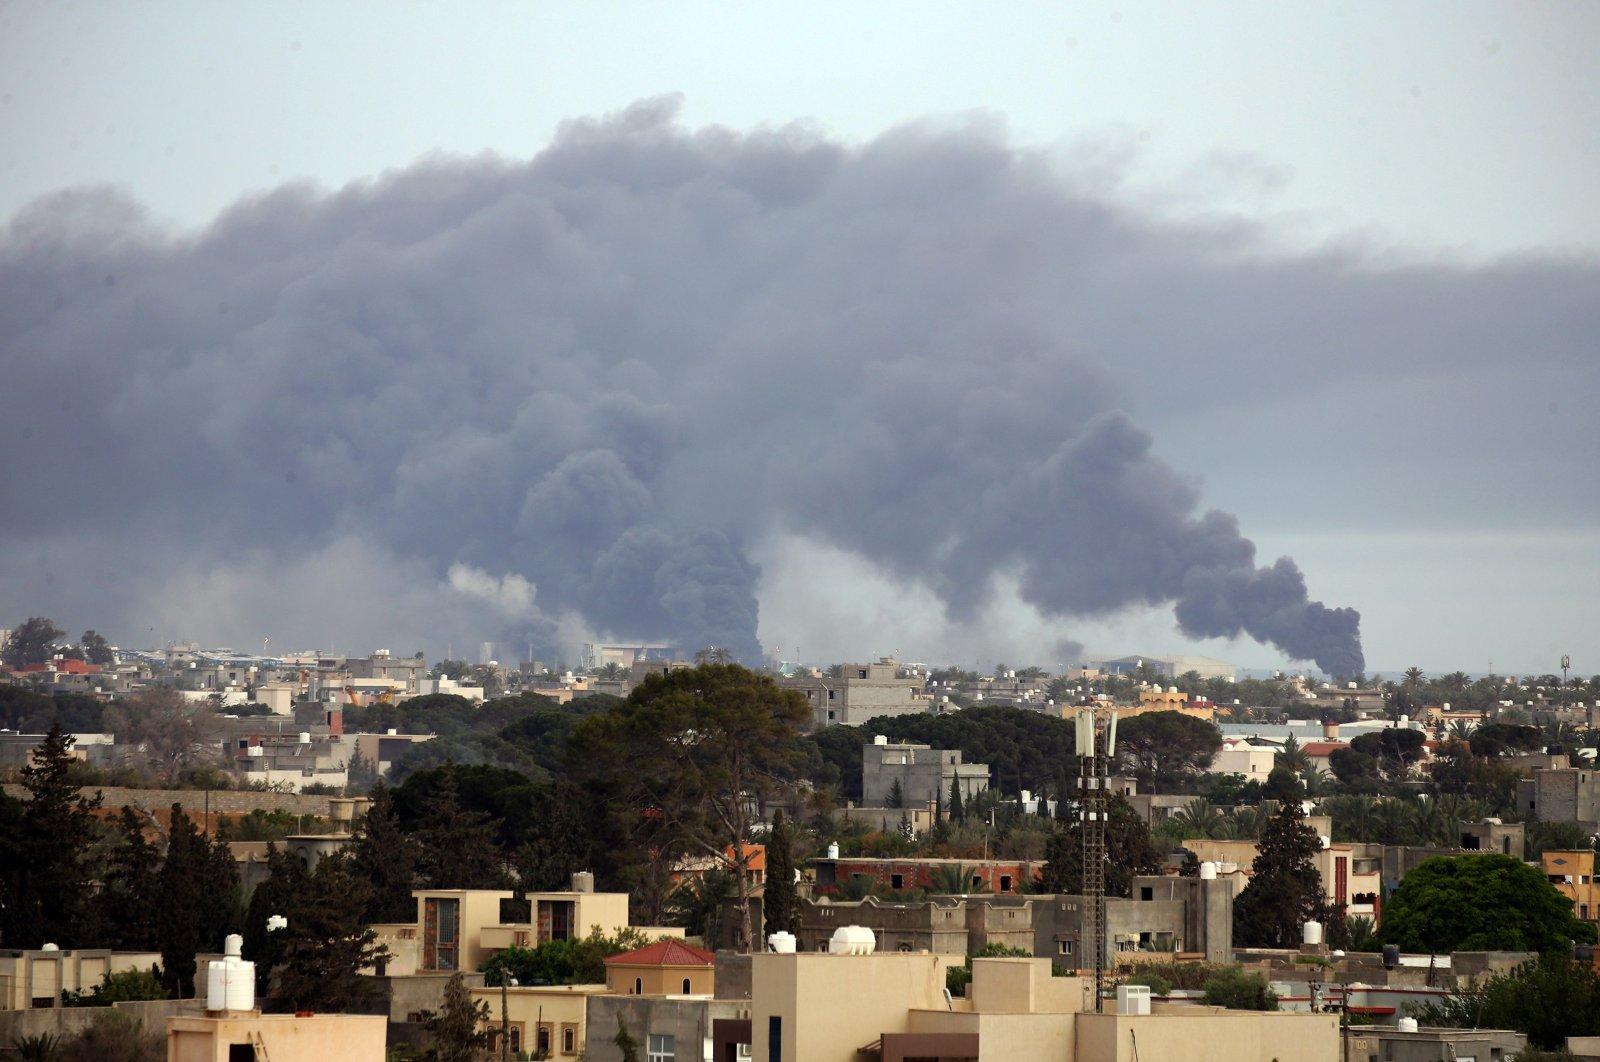 Smoke fumes rise above buildings during reported shelling by warlord Gen. Khalifa Haftar's forces, Tripoli, Libya, May 9, 2020. (AFP Photo)